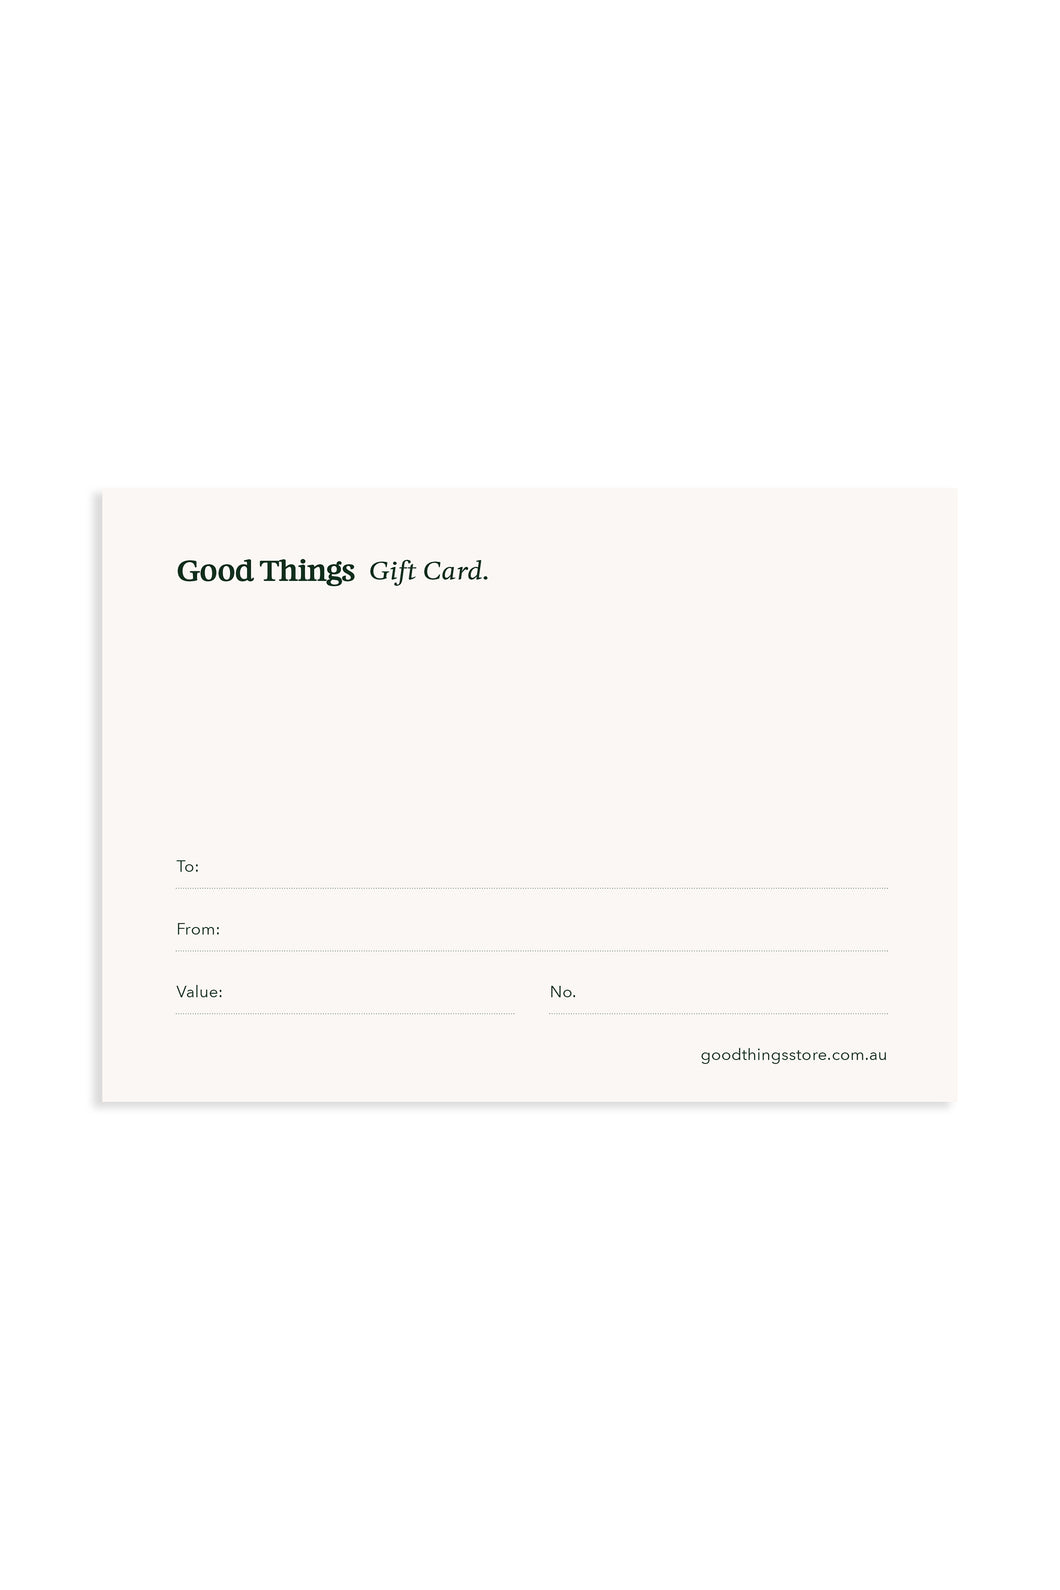 Good Things Gift Card